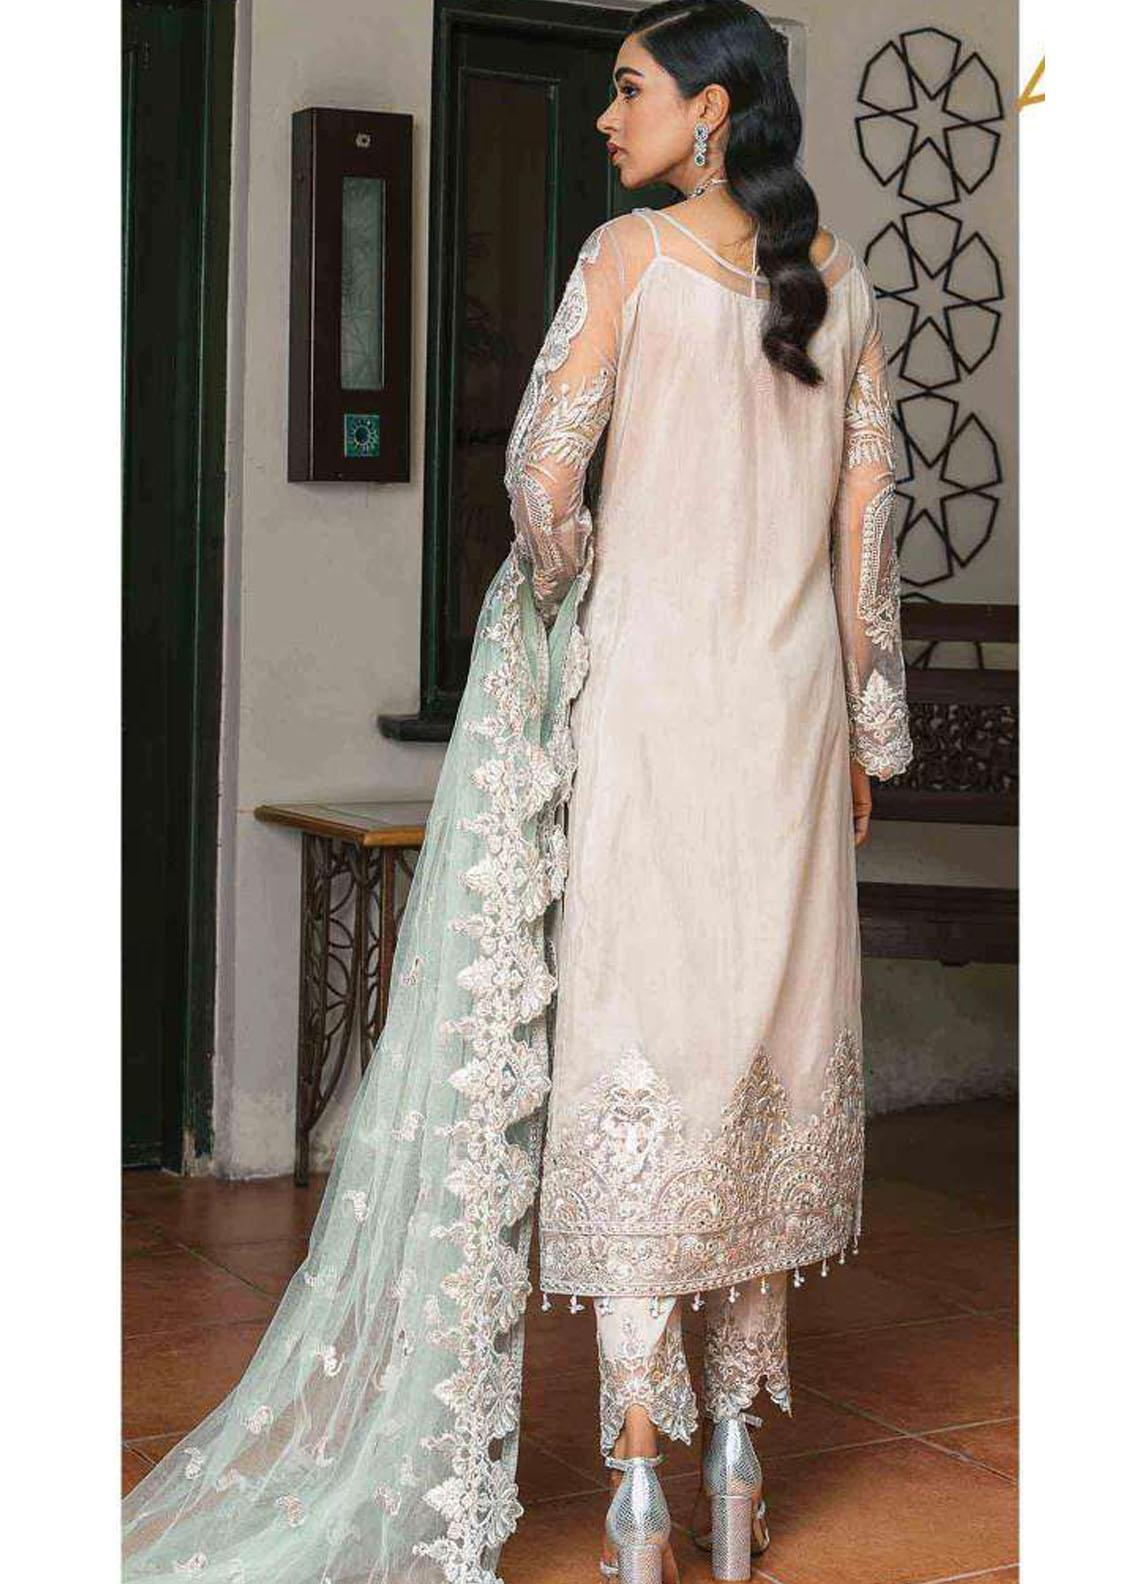 Suraj Garh by Imrozia Premium Embroidered Net Suit Unstitched 3 Piece I-139 AAYNA – Wedding Collection